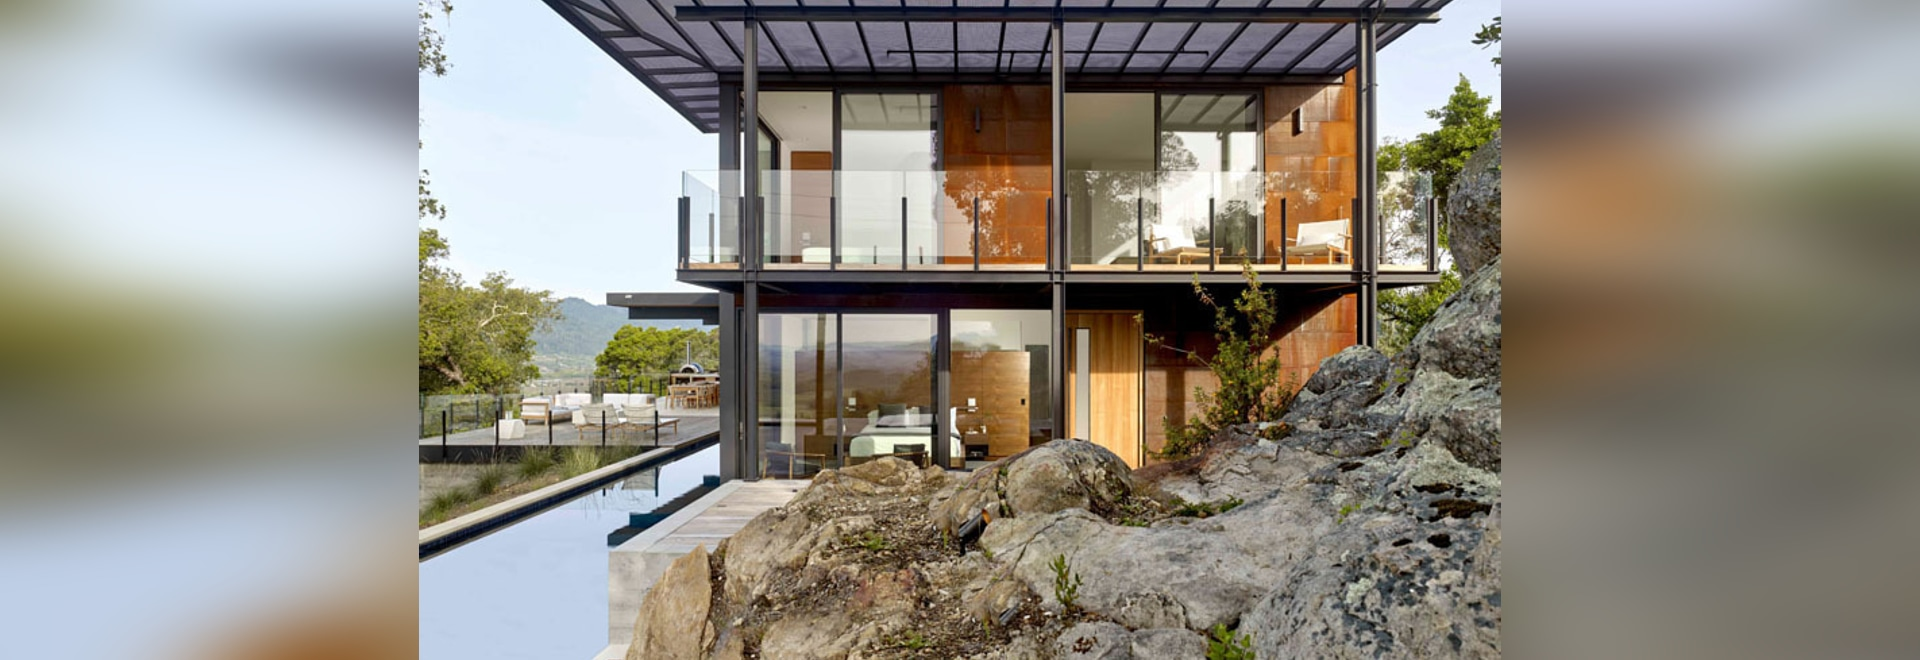 The RidgeView House by Zack | de Vito Architecture + Construction